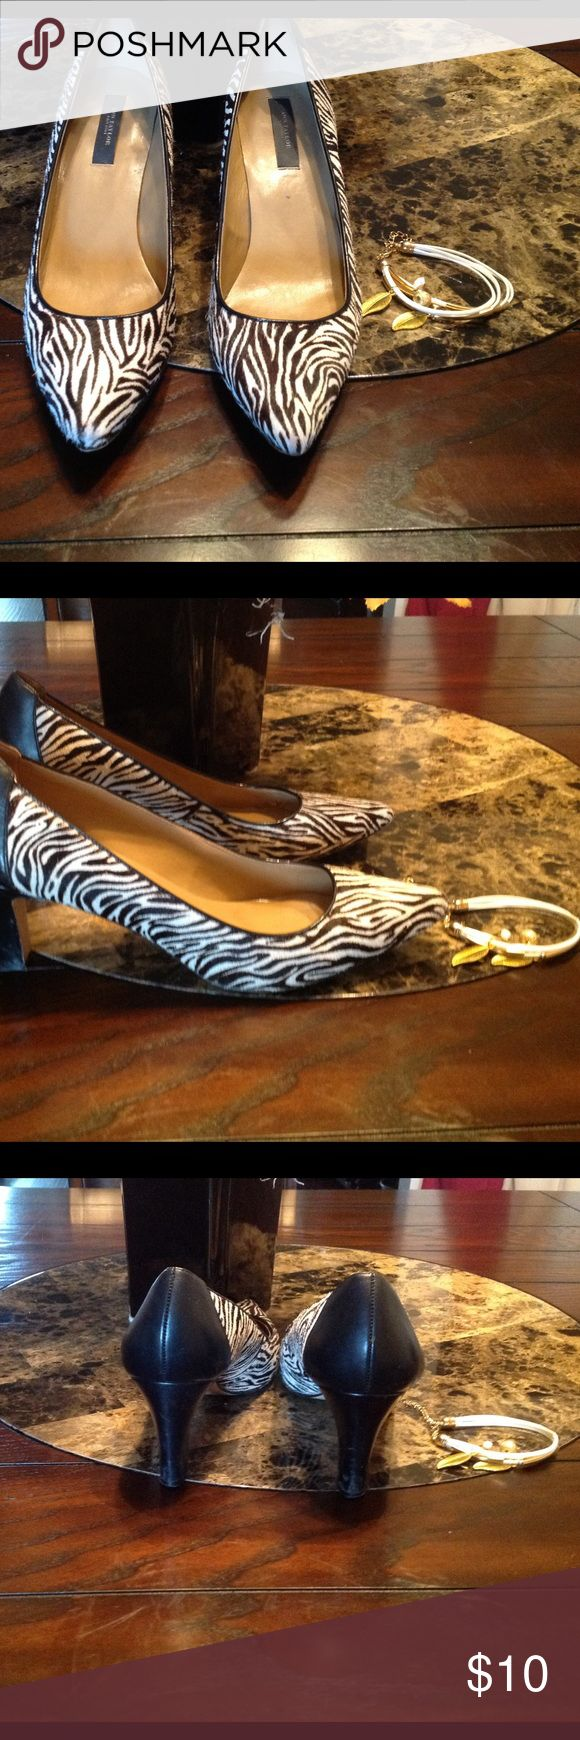 Ann Taylor zebra shoes.   Size 8.5. Good condition.    Wear on bottom, reflected in price. Ann Taylor Shoes